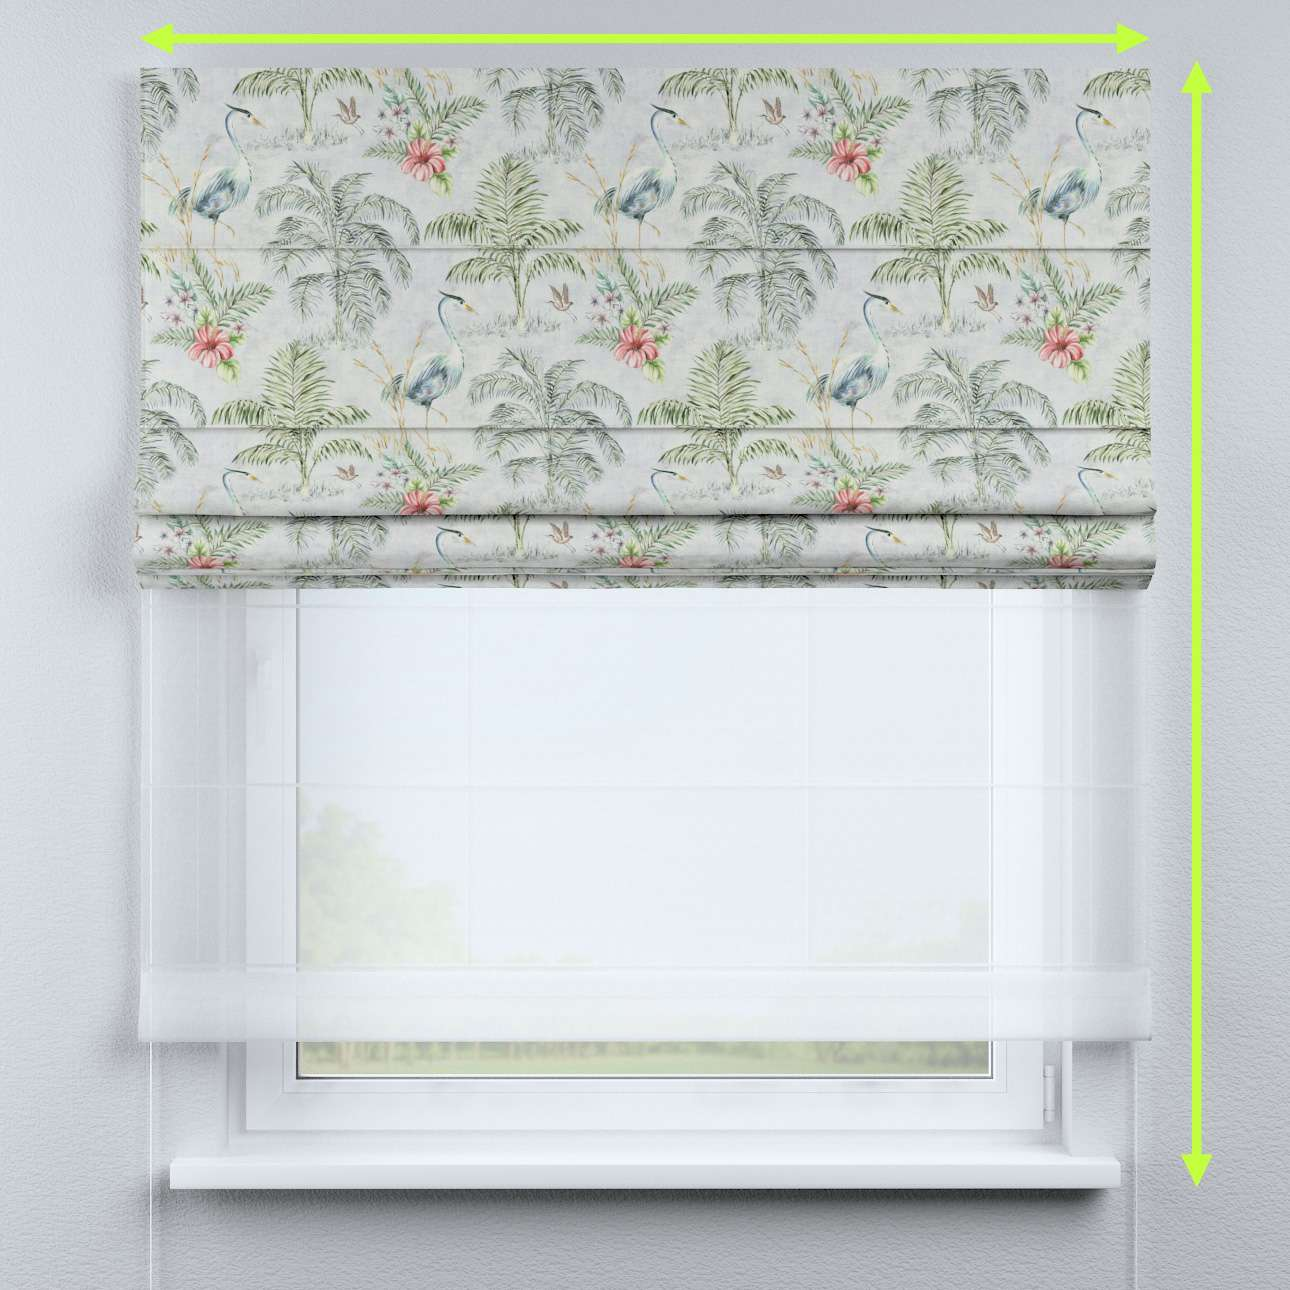 Voile and fabric roman blind (DUO II) in collection Tropical Island, fabric: 142-58